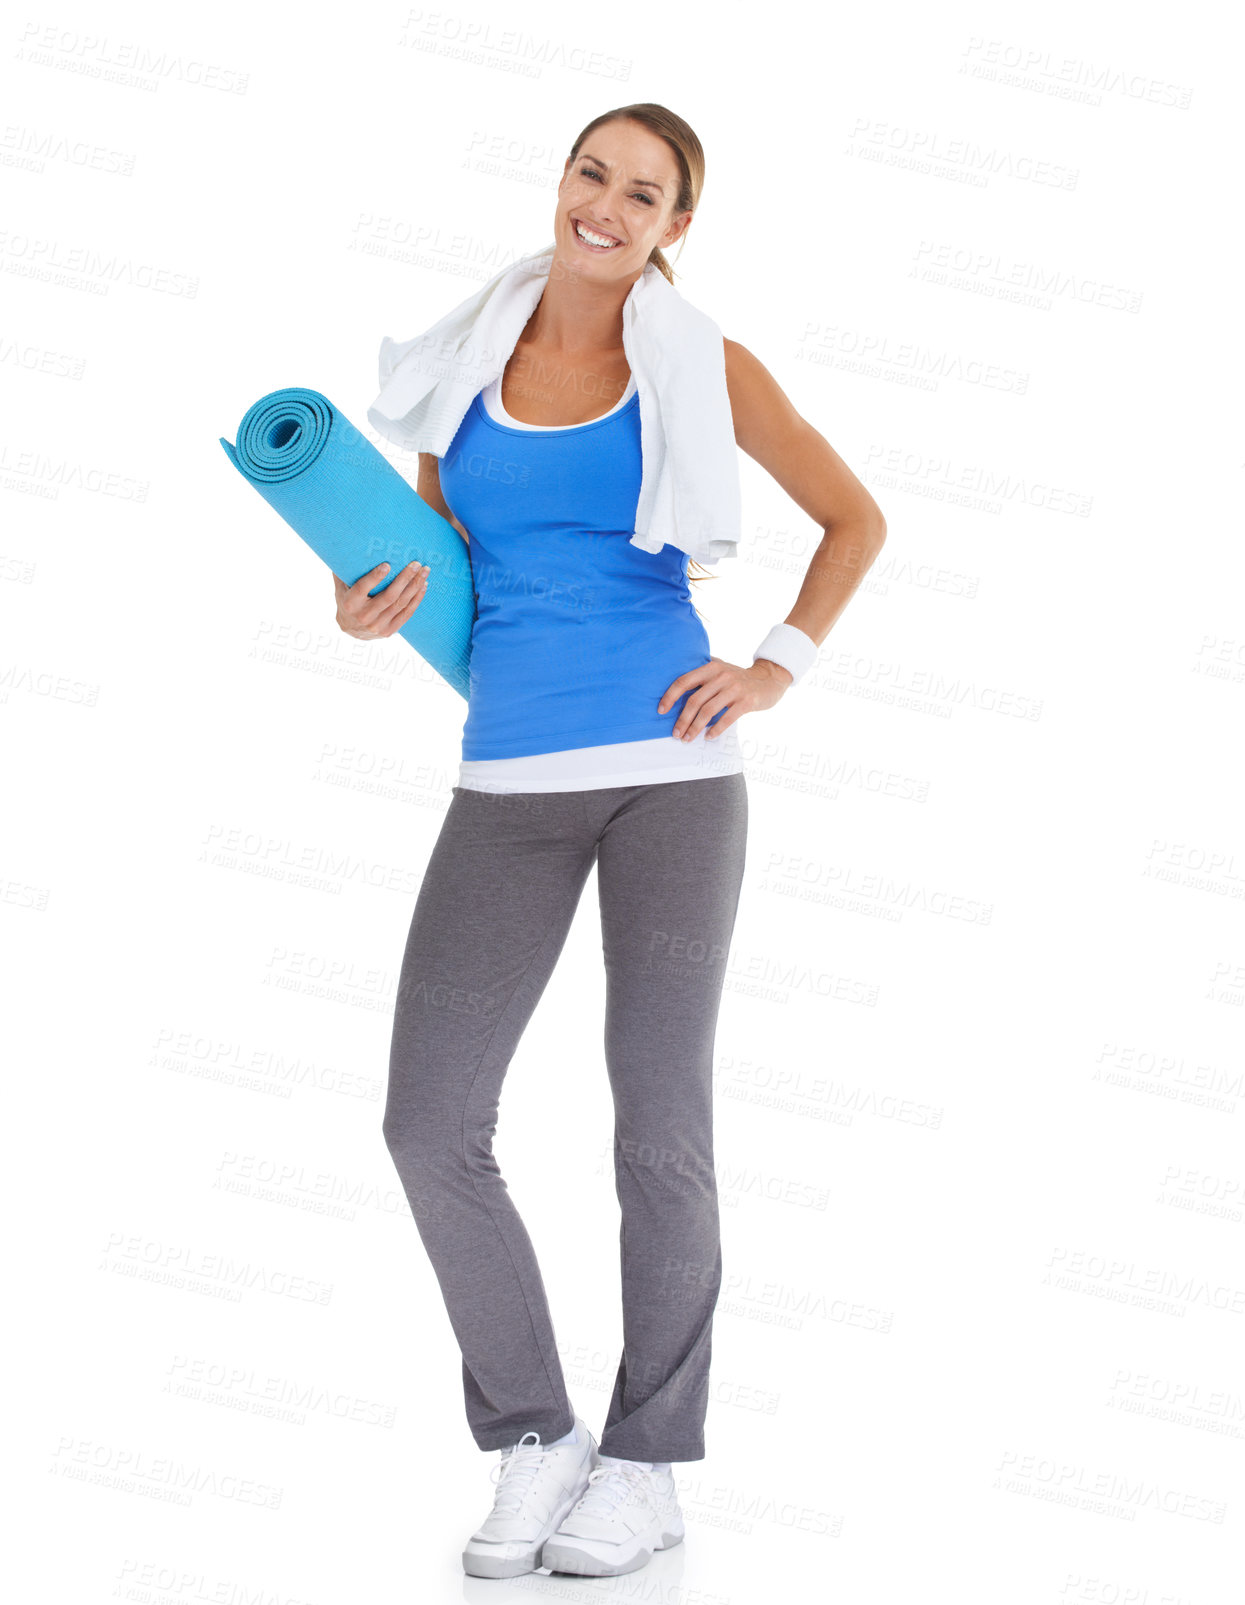 Buy stock photo Fit young woman holding a pilates mat with a smile - isolated on white